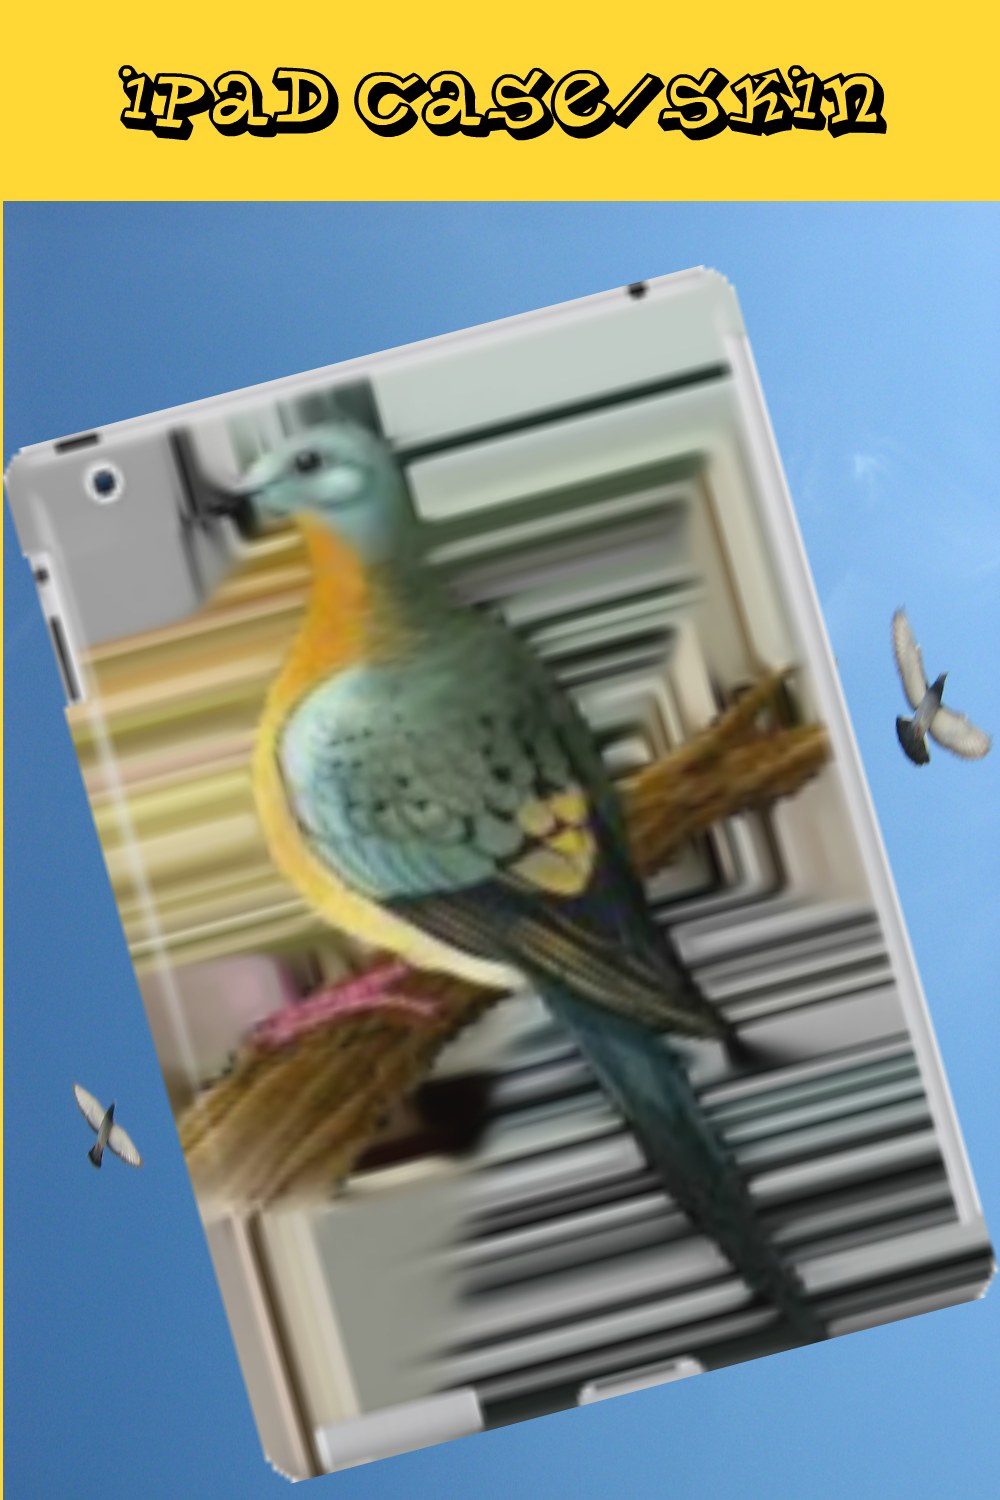 Buy Bird iPad Case/Skin  now. Browse a lot  of popular calm iPad Case/Skin    and other products on The bird 2014 and personalize your iPad to suit you. Browse our content now. #ipad wallpaper#ipad pro#ipad wallpaper aesthetic#ipad notes#ipad#ipad case/skin